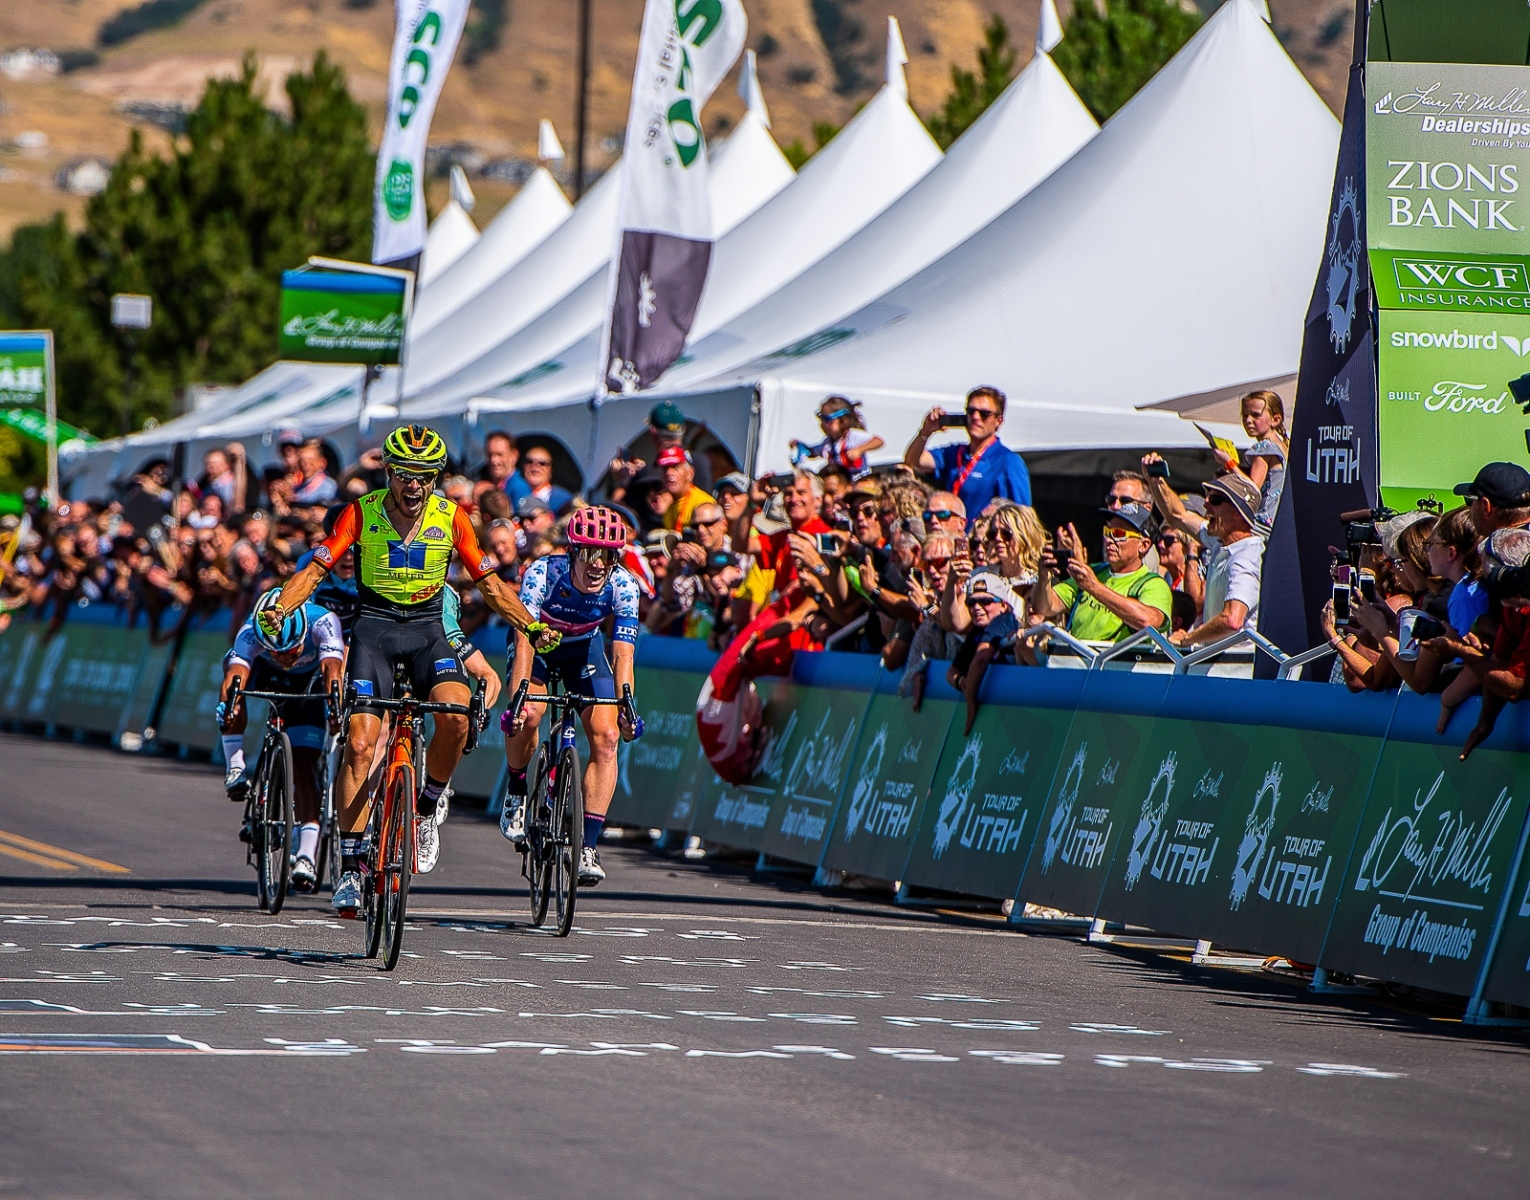 Umberto Marengo (Neri Sottoli-Selle Italia-KTM) takes Stage 1 in a 5 man sprint, followed closely by Lawson Craddock (EF Education First), who moves into the yellow jersey of GC leader. 2019 Tour of Utah. Photo by Steven L. Sheffield